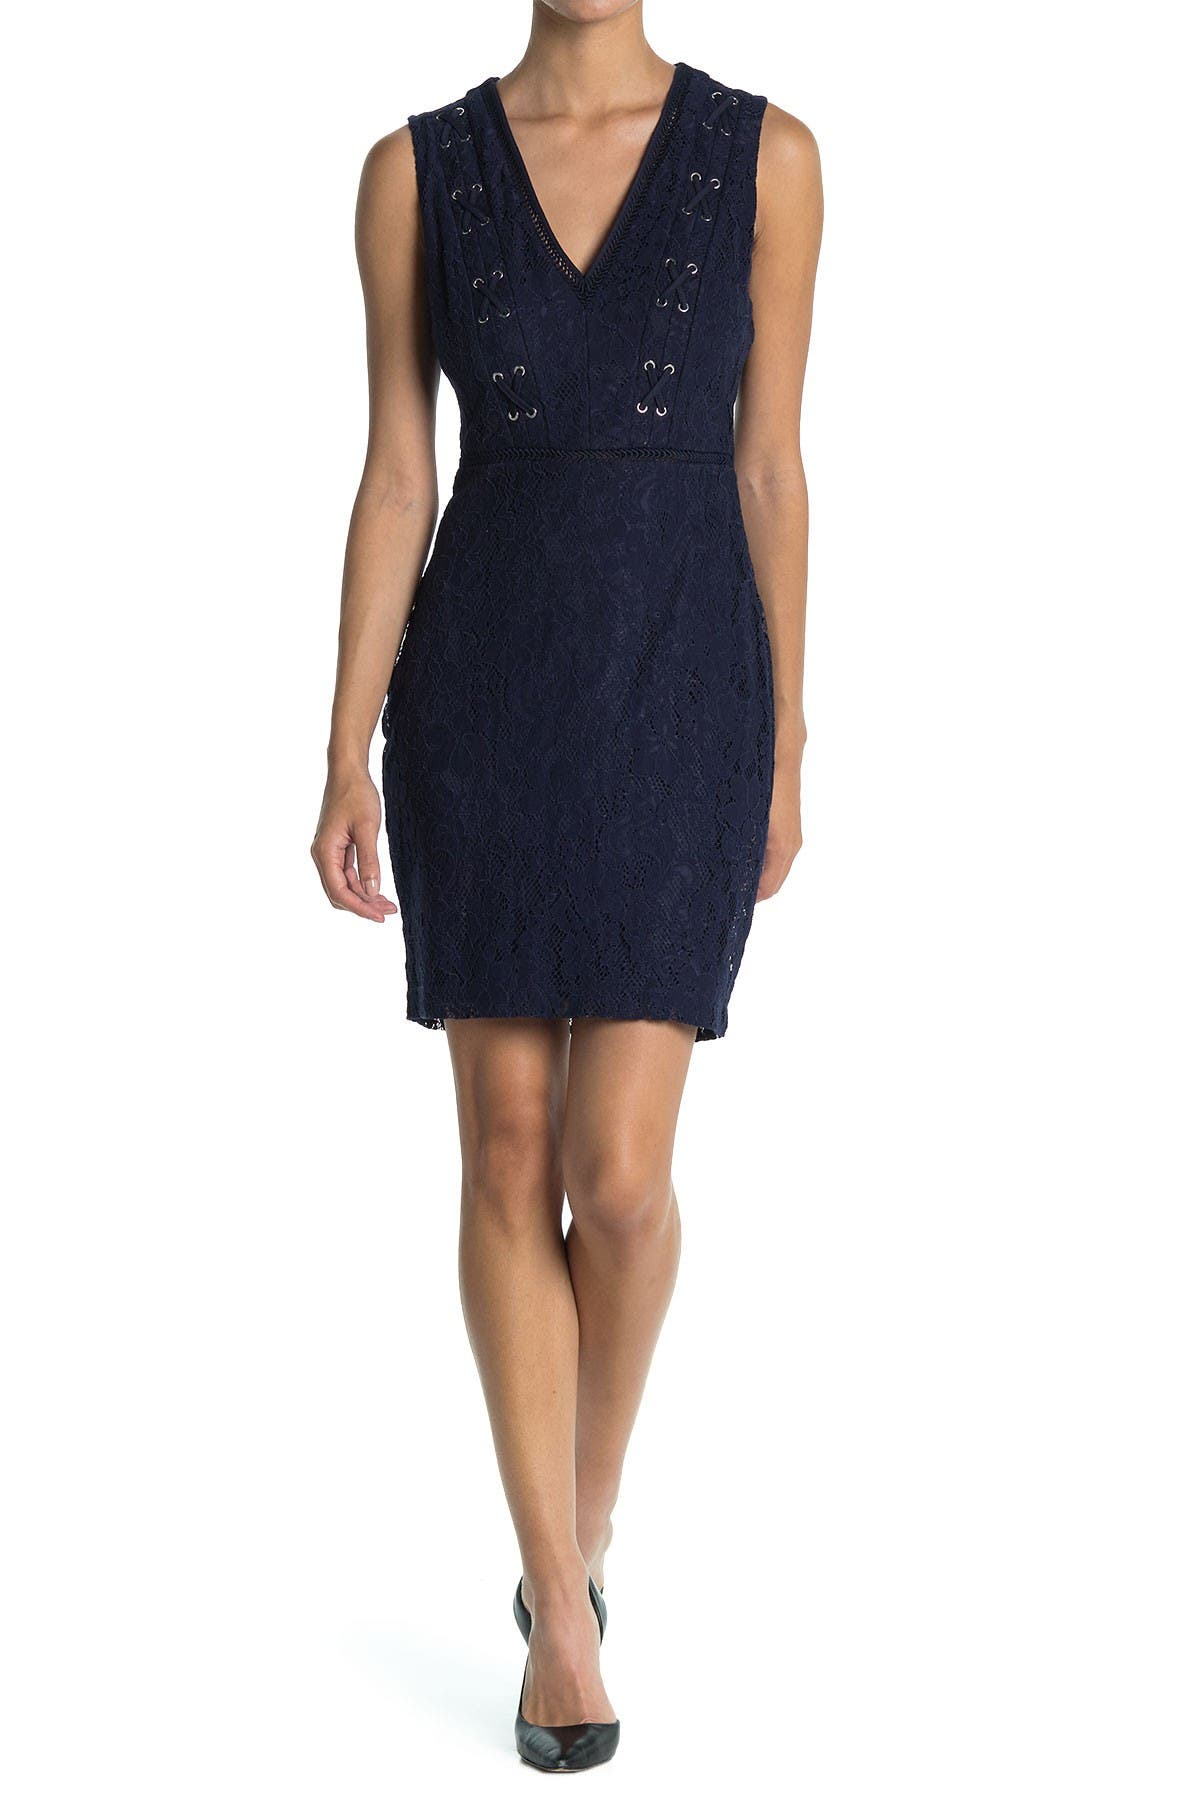 Image of GUESS Lace Overlay Bodycon Dress